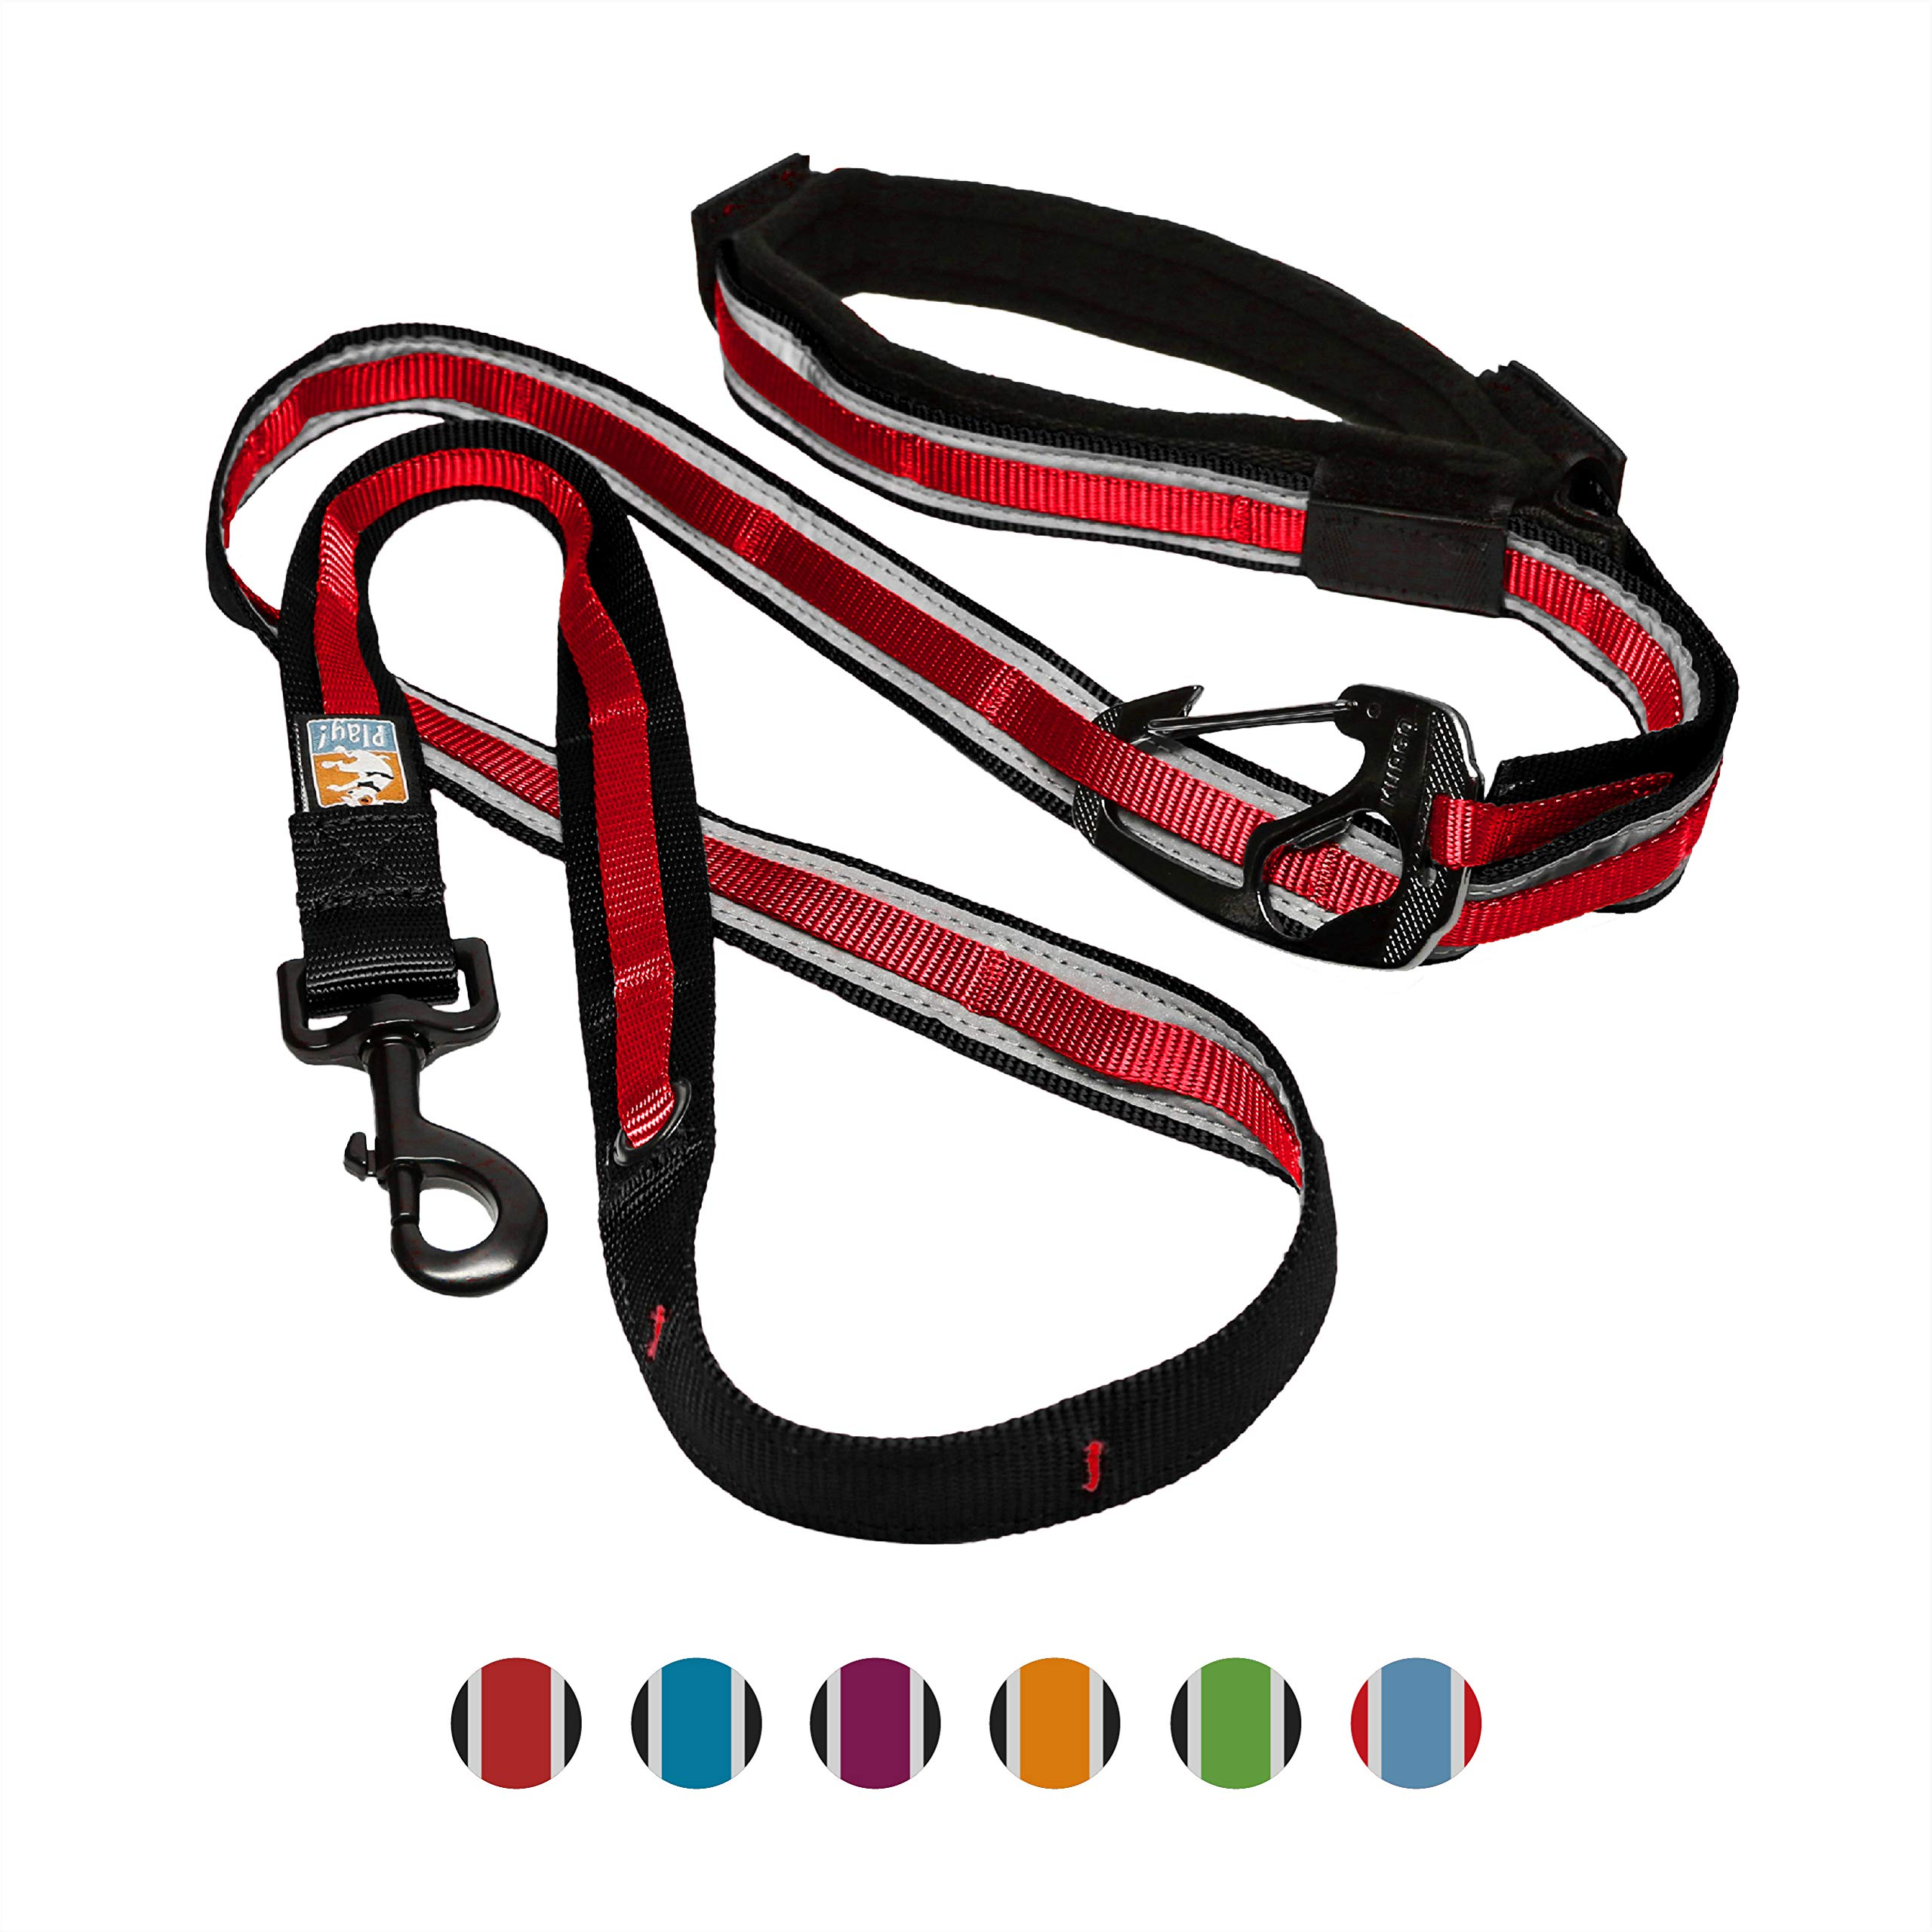 Kurgo 6 in 1 Quantum Dog Leash | Multi-Functional Hands Free Leash for Dogs | Reflective & Adjustable 6ft Lead | Dog Waist Running Belt | Padded Handle | for Training, Hiking, or Jogging | Barn Red